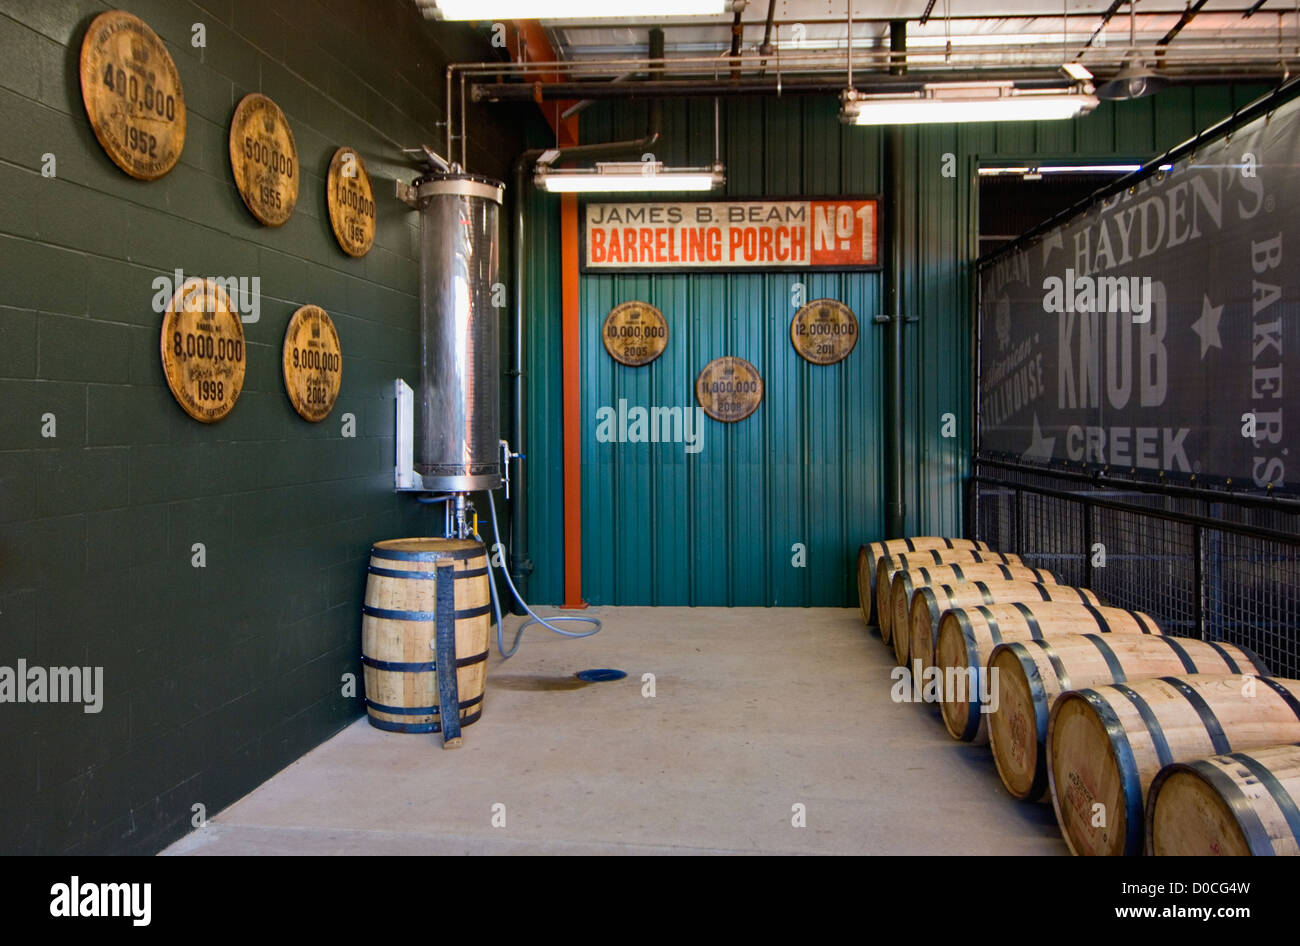 Barreling Porch at Jim Beam Distillery in Clermont, Kentucky - Stock Image